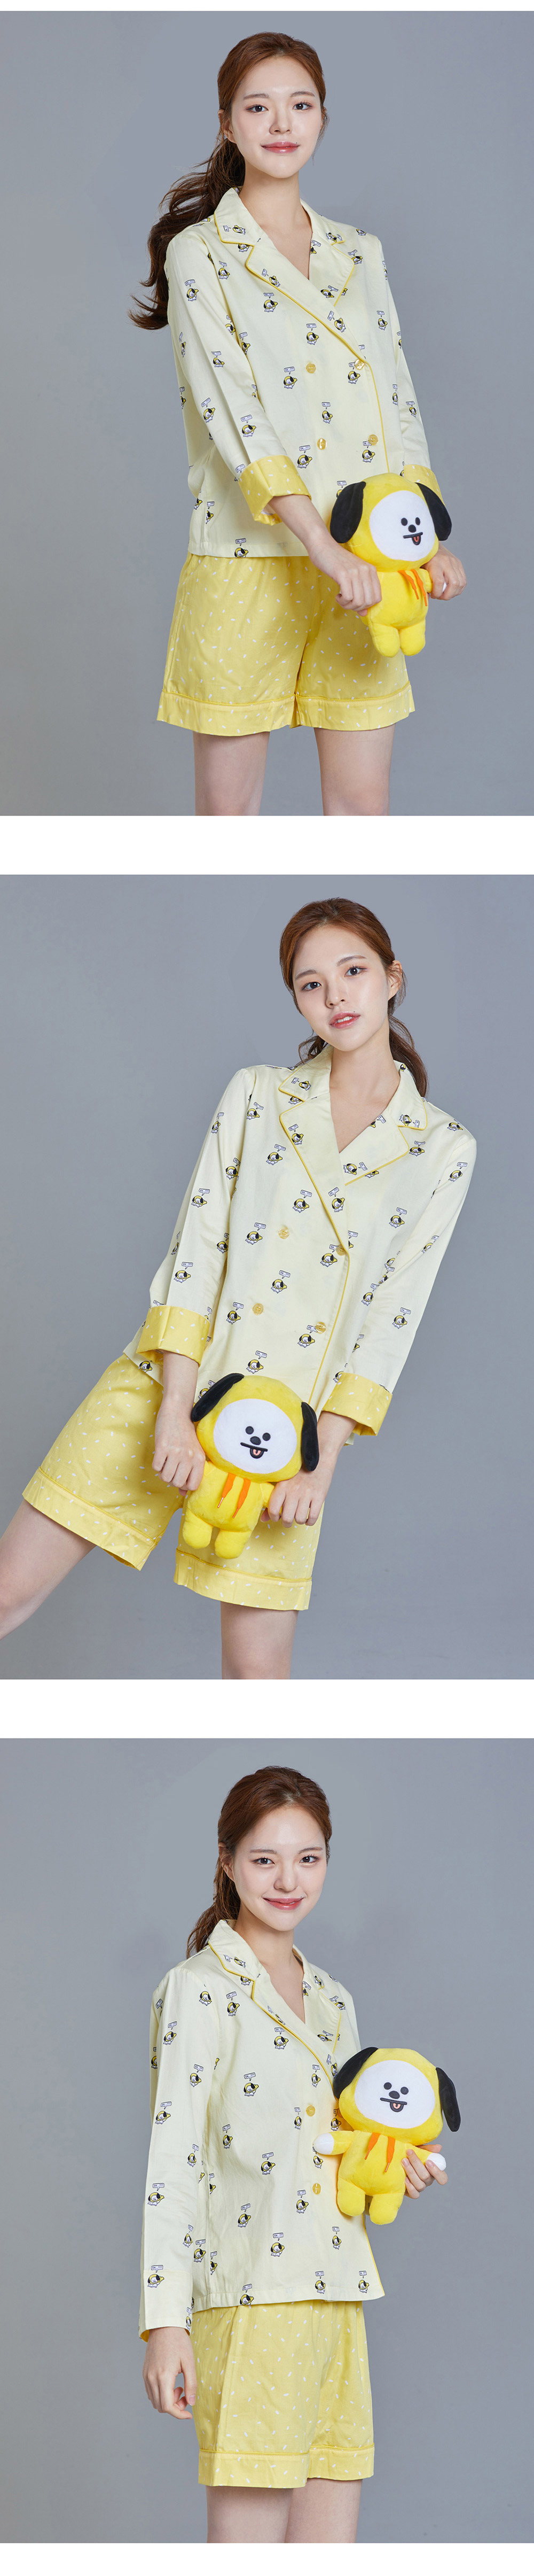 bt21_hunt_7pajama_02.jpg